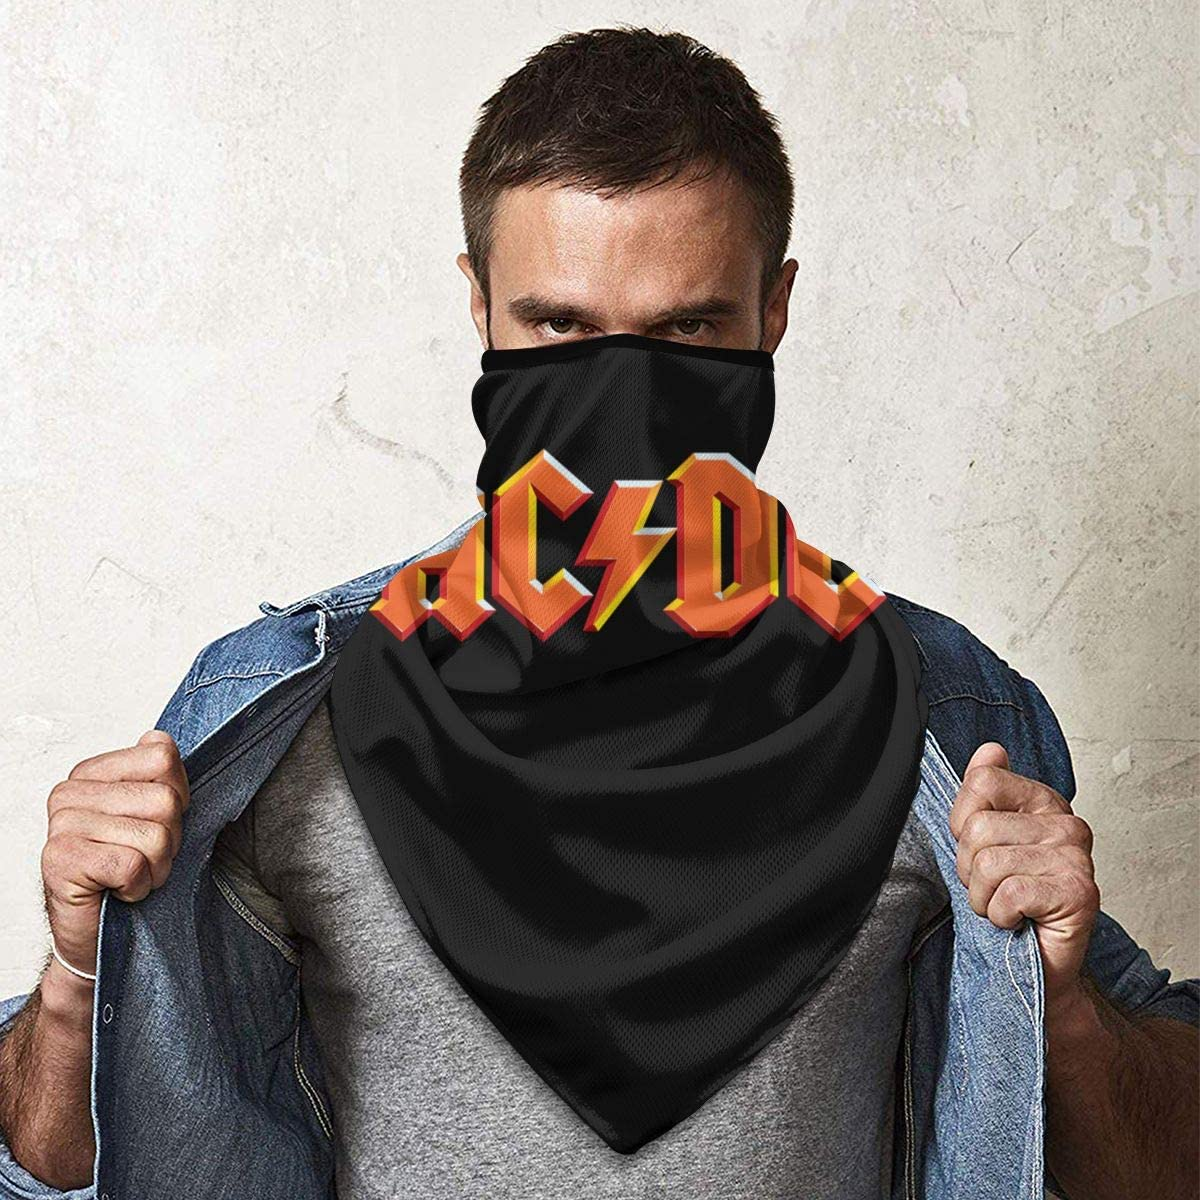 Face Magic Headwear ACDC Band Logo Mens Womens Windproof Sports Headscarf Bandanas Work Out Tube Scarf Neck Gaiter Motorcycle Headbands Helmet for Hiking